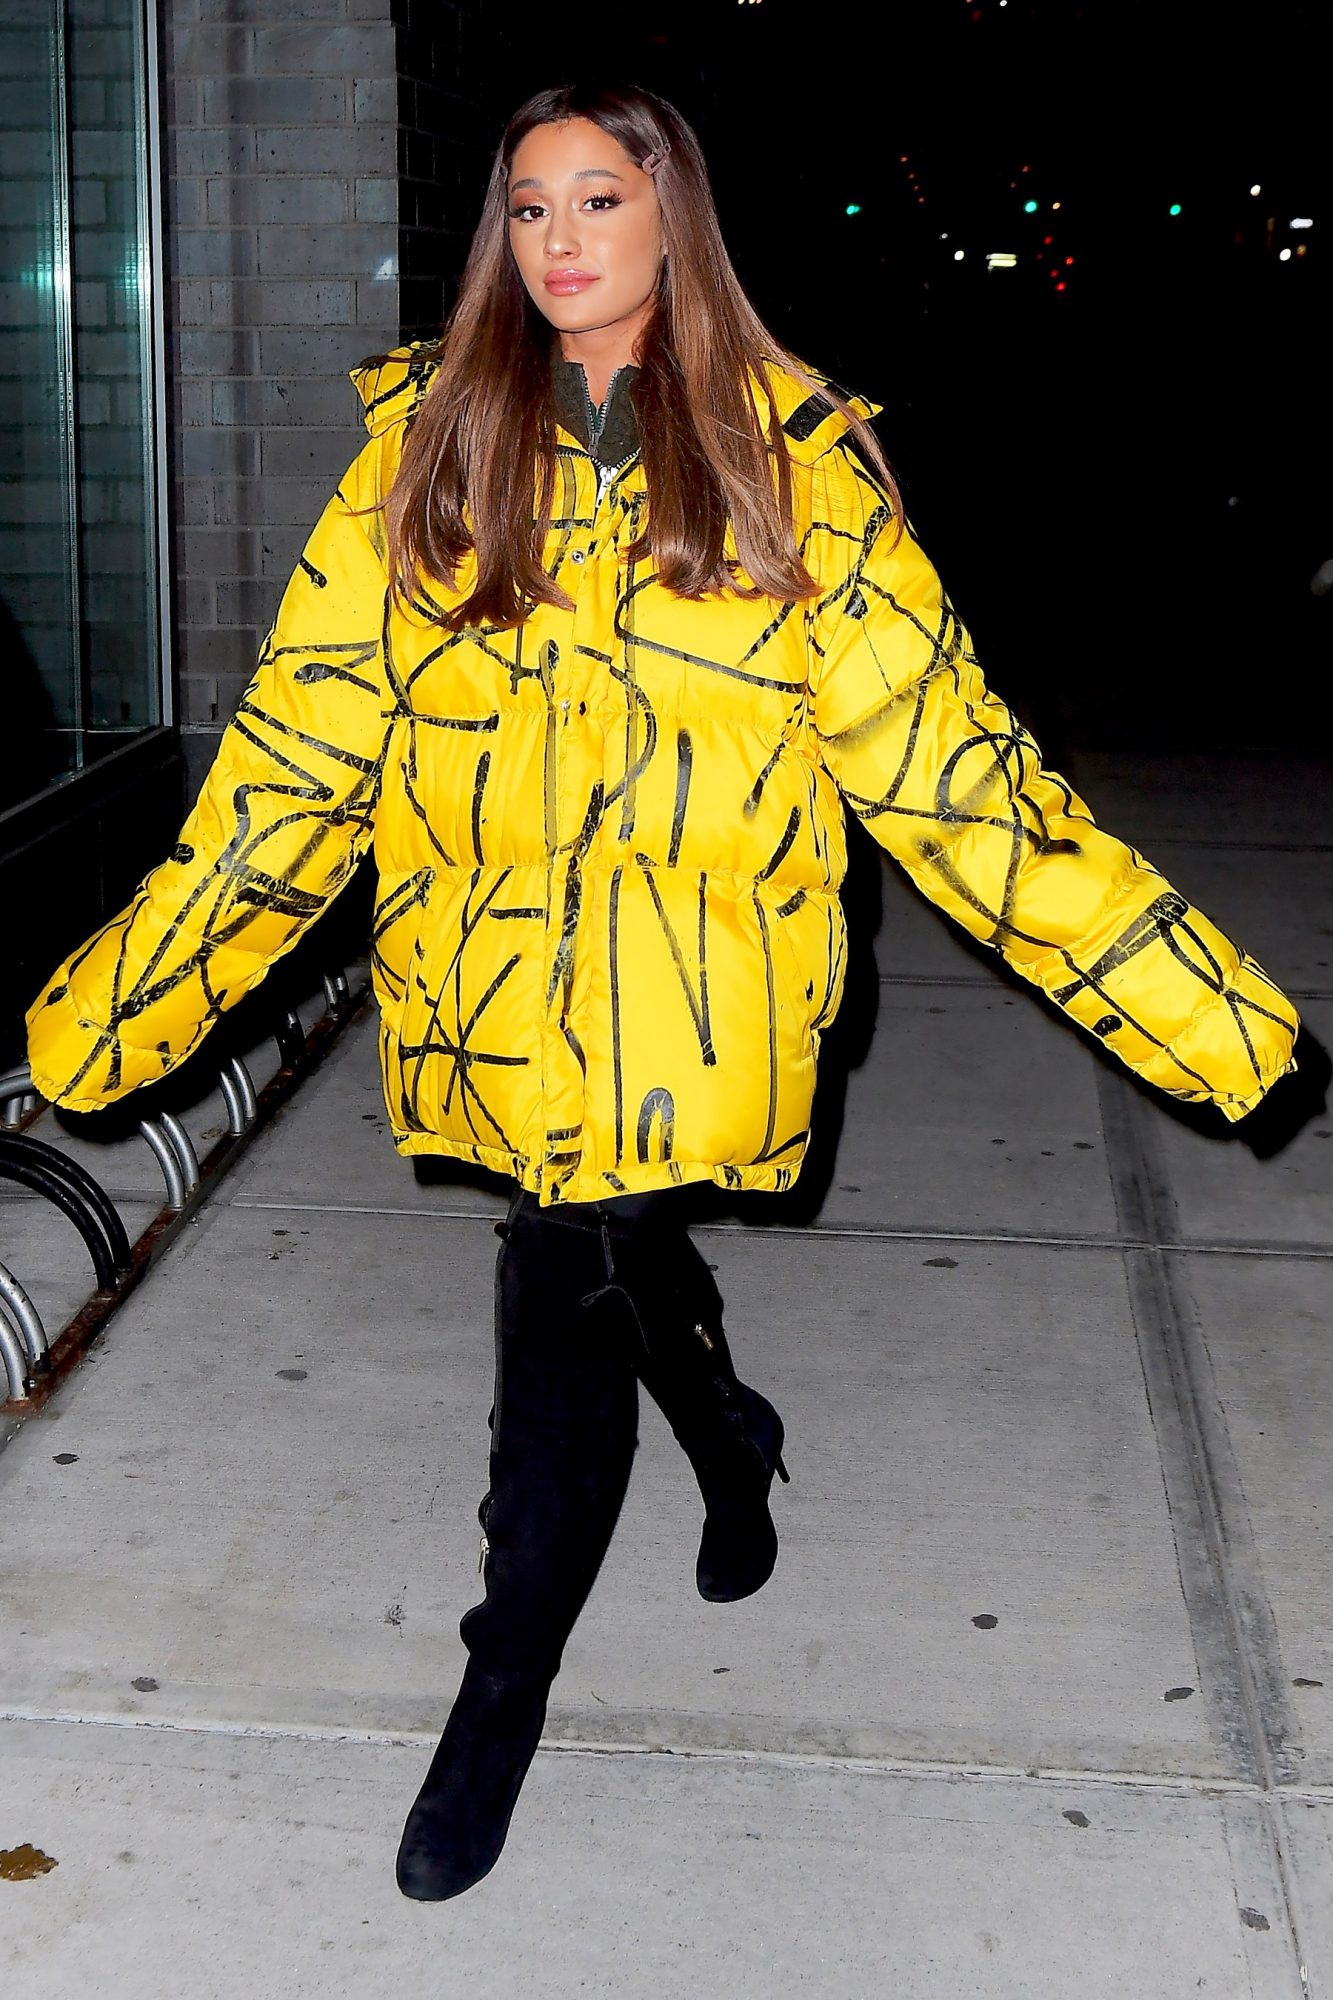 EXCLUSIVE: Ariana Grande Heads To The Recording Studio Wearing Oversized Yellow Puffer Jacket